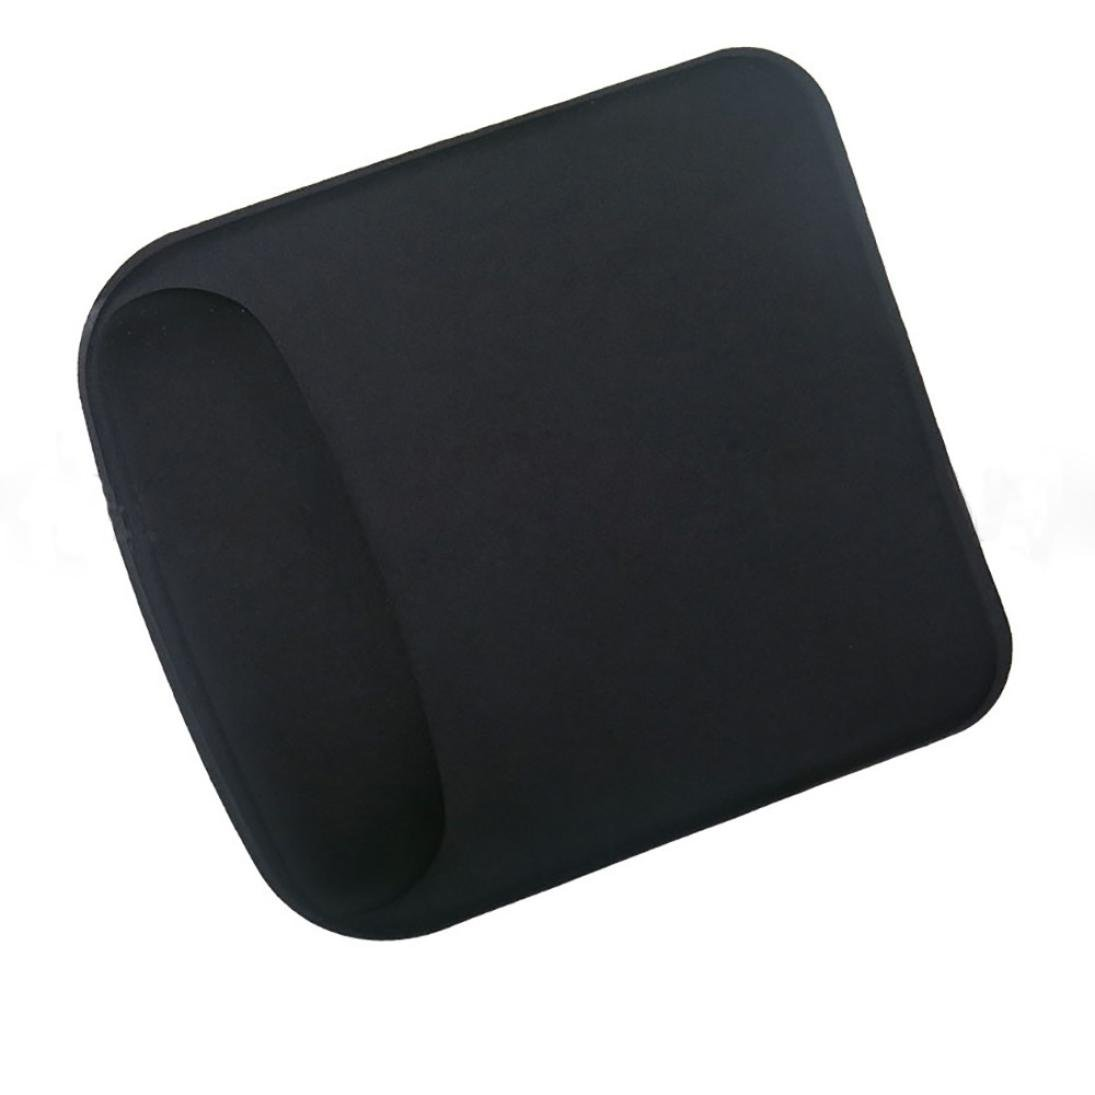 Coohole Gel Wrist Rest Support Game Mouse Mat Anti-slip Pad for Computer PC Laptop (Black 1, A)